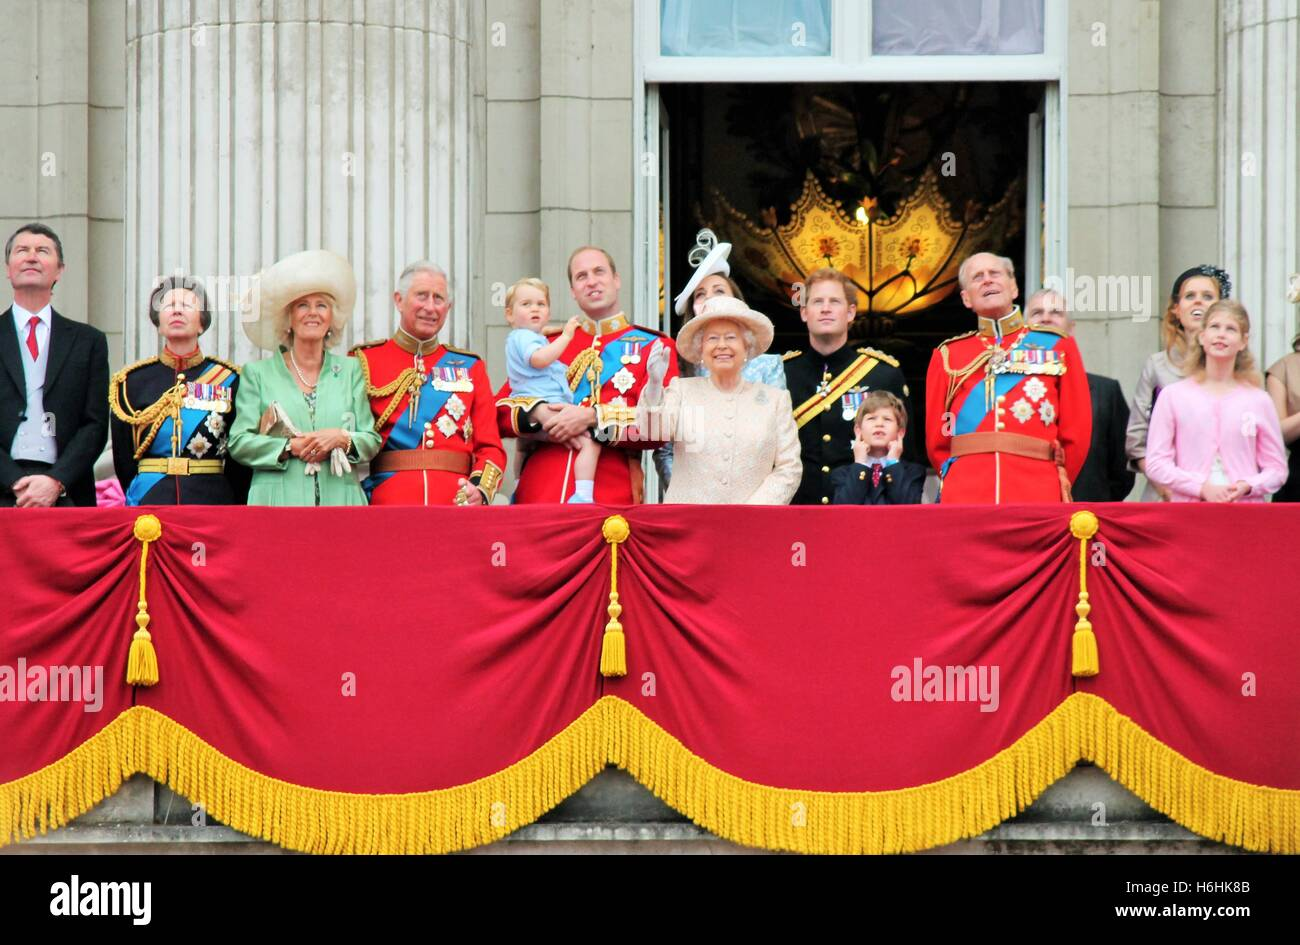 Trooping The Color Balcony Stock Photos & Trooping The Color Balcony ...